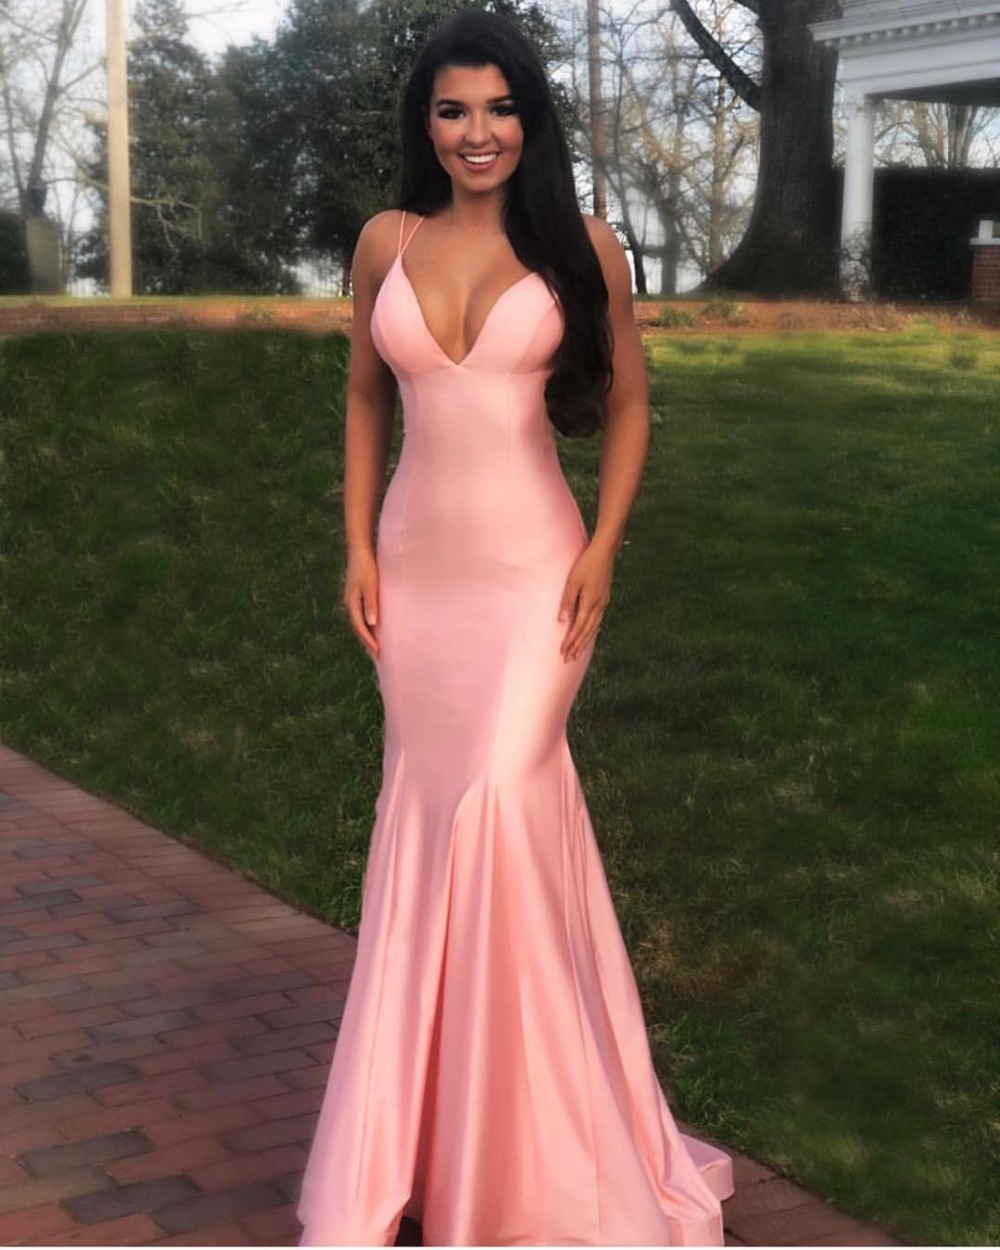 f6ffabc26ad 2019 Pink Mermaid Satin Long Prom Dresses With Spaghetti Straps Sexy Deep V  Neck Open Back